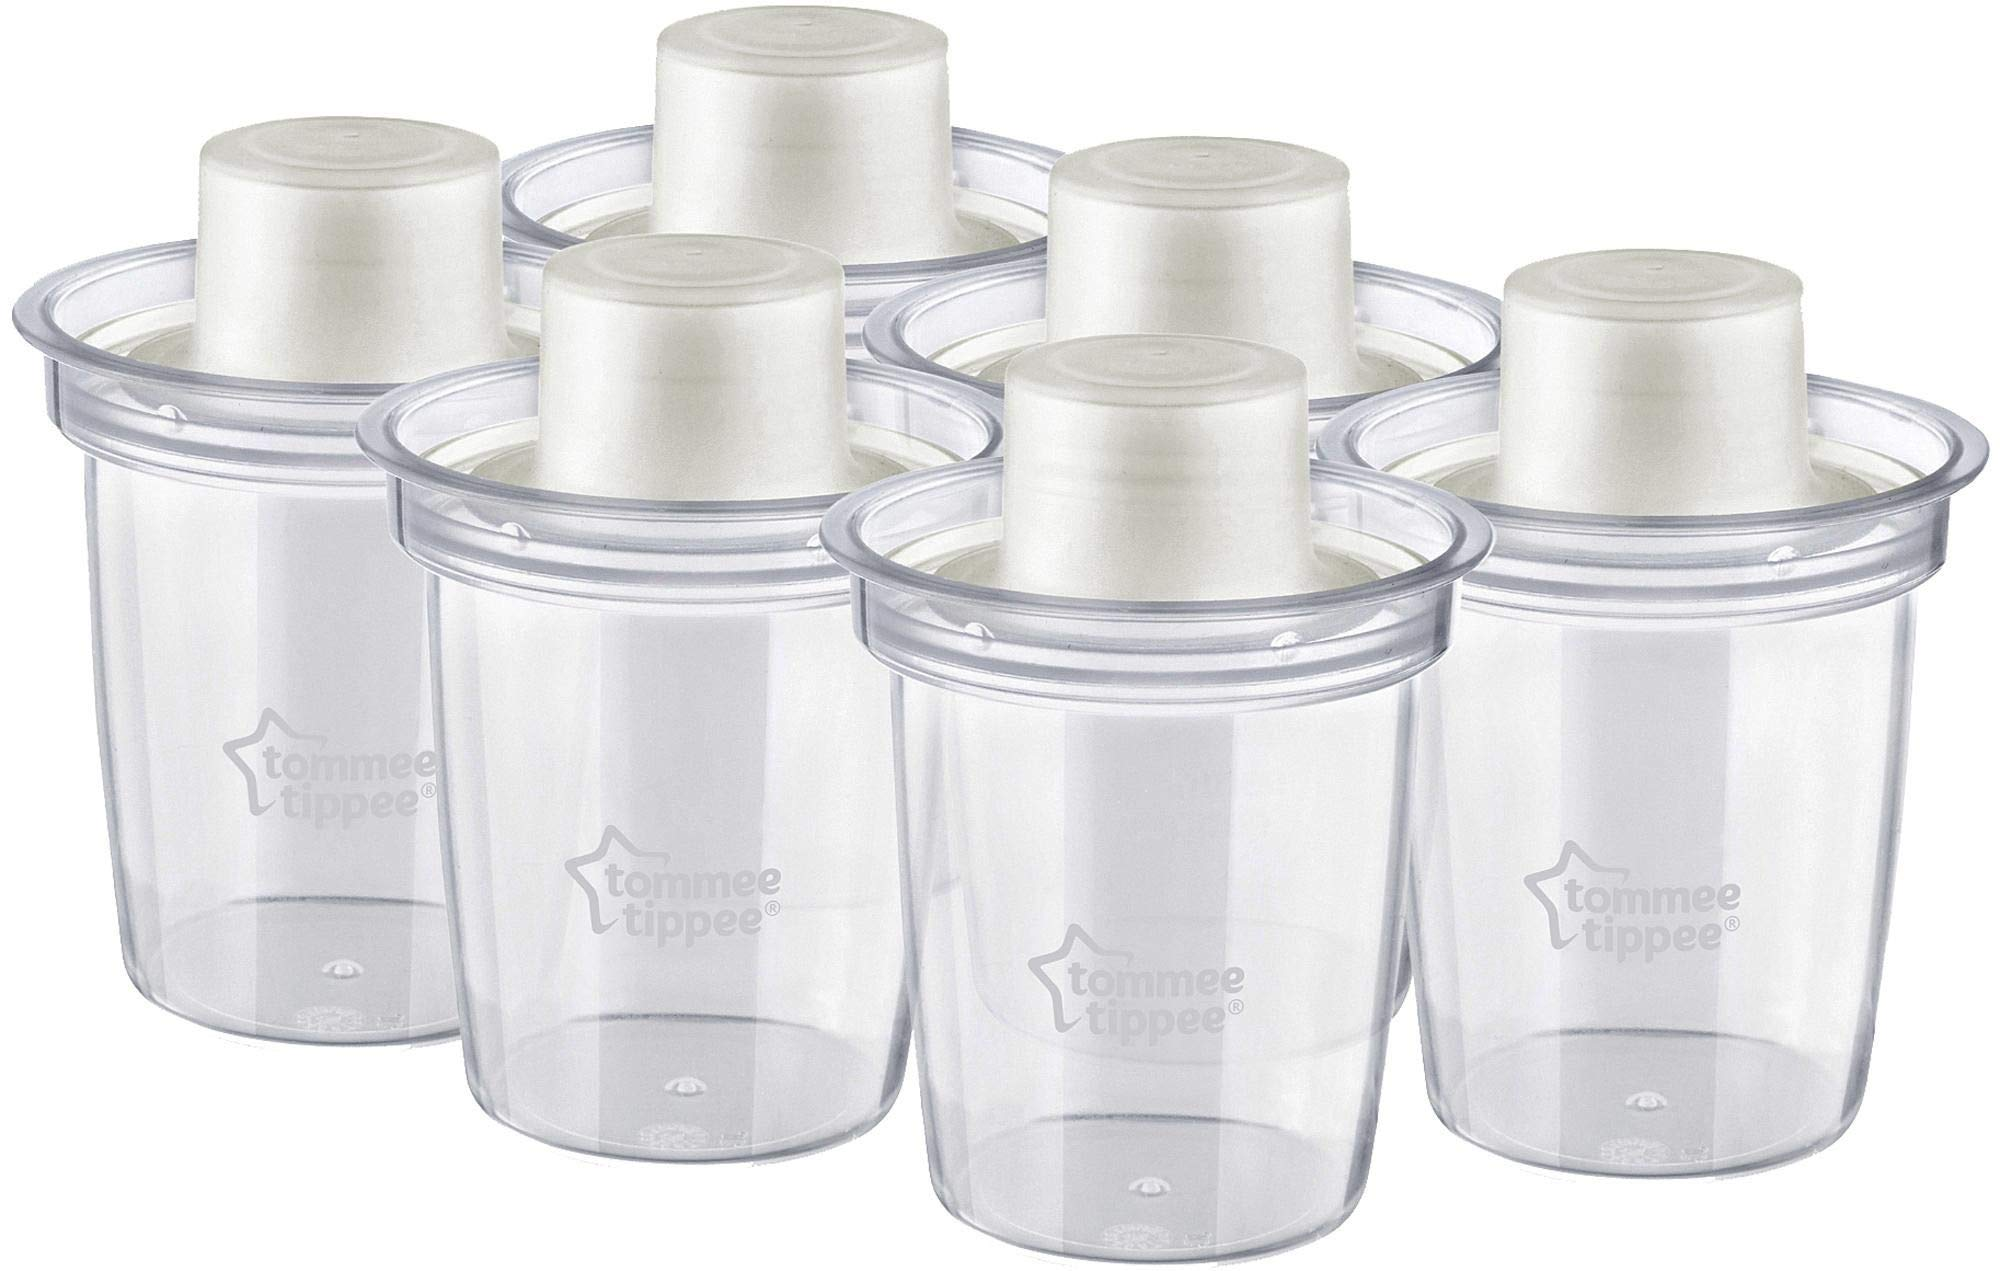 Tommee Tippee Closer to Nature Milk Powder Dispensers (6-Pack) by Tommee Tippee by Tommee Tippee